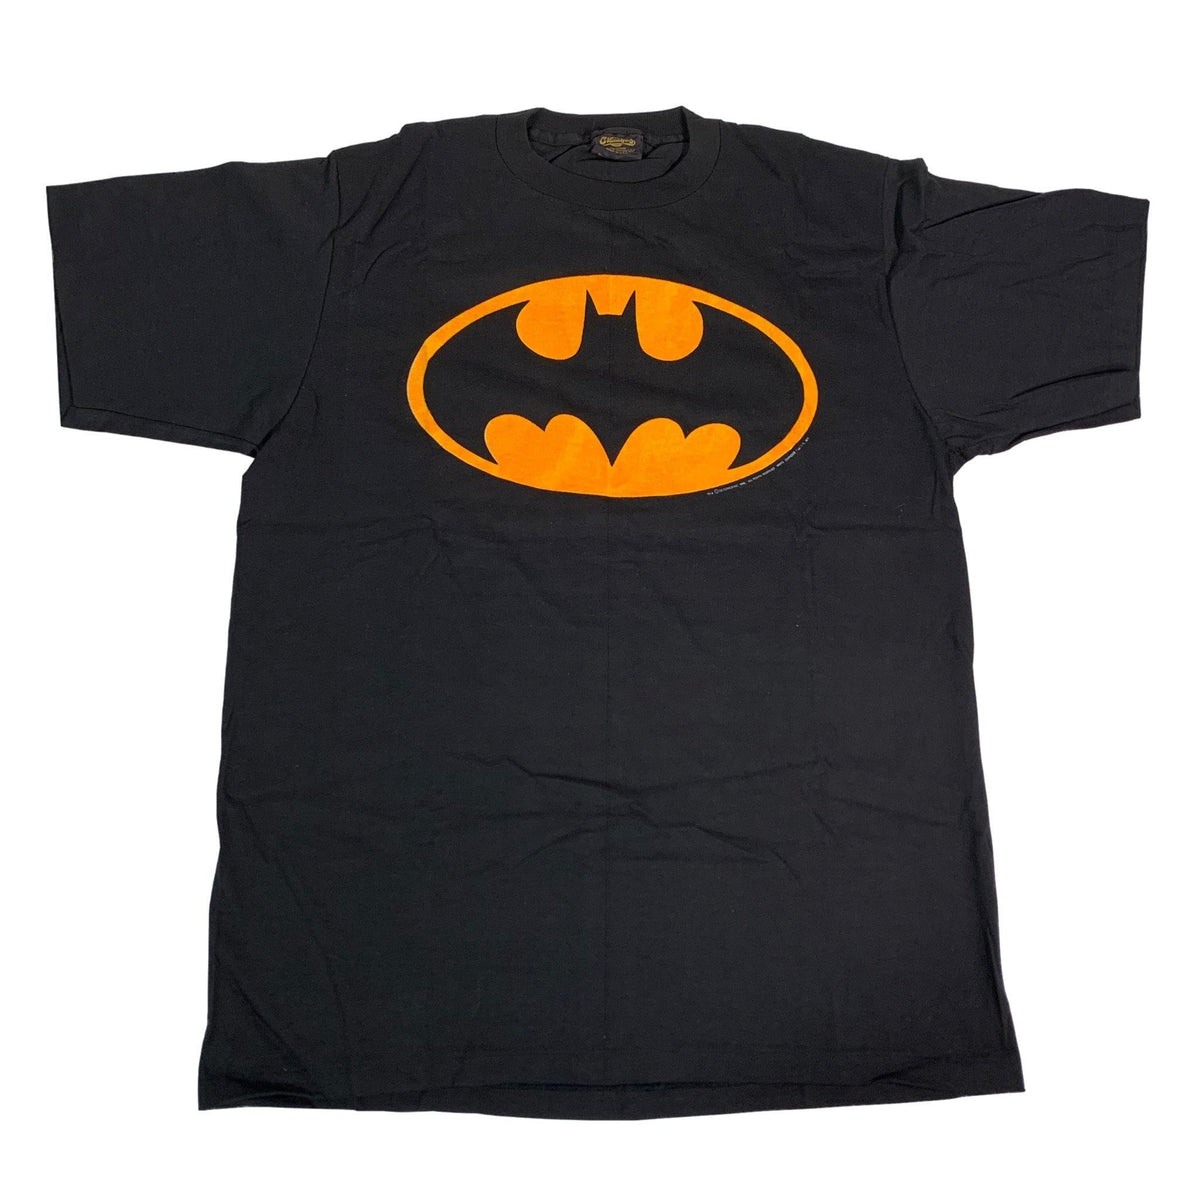 "Vintage Batman ""1985"" T-Shirt - jointcustodydc"